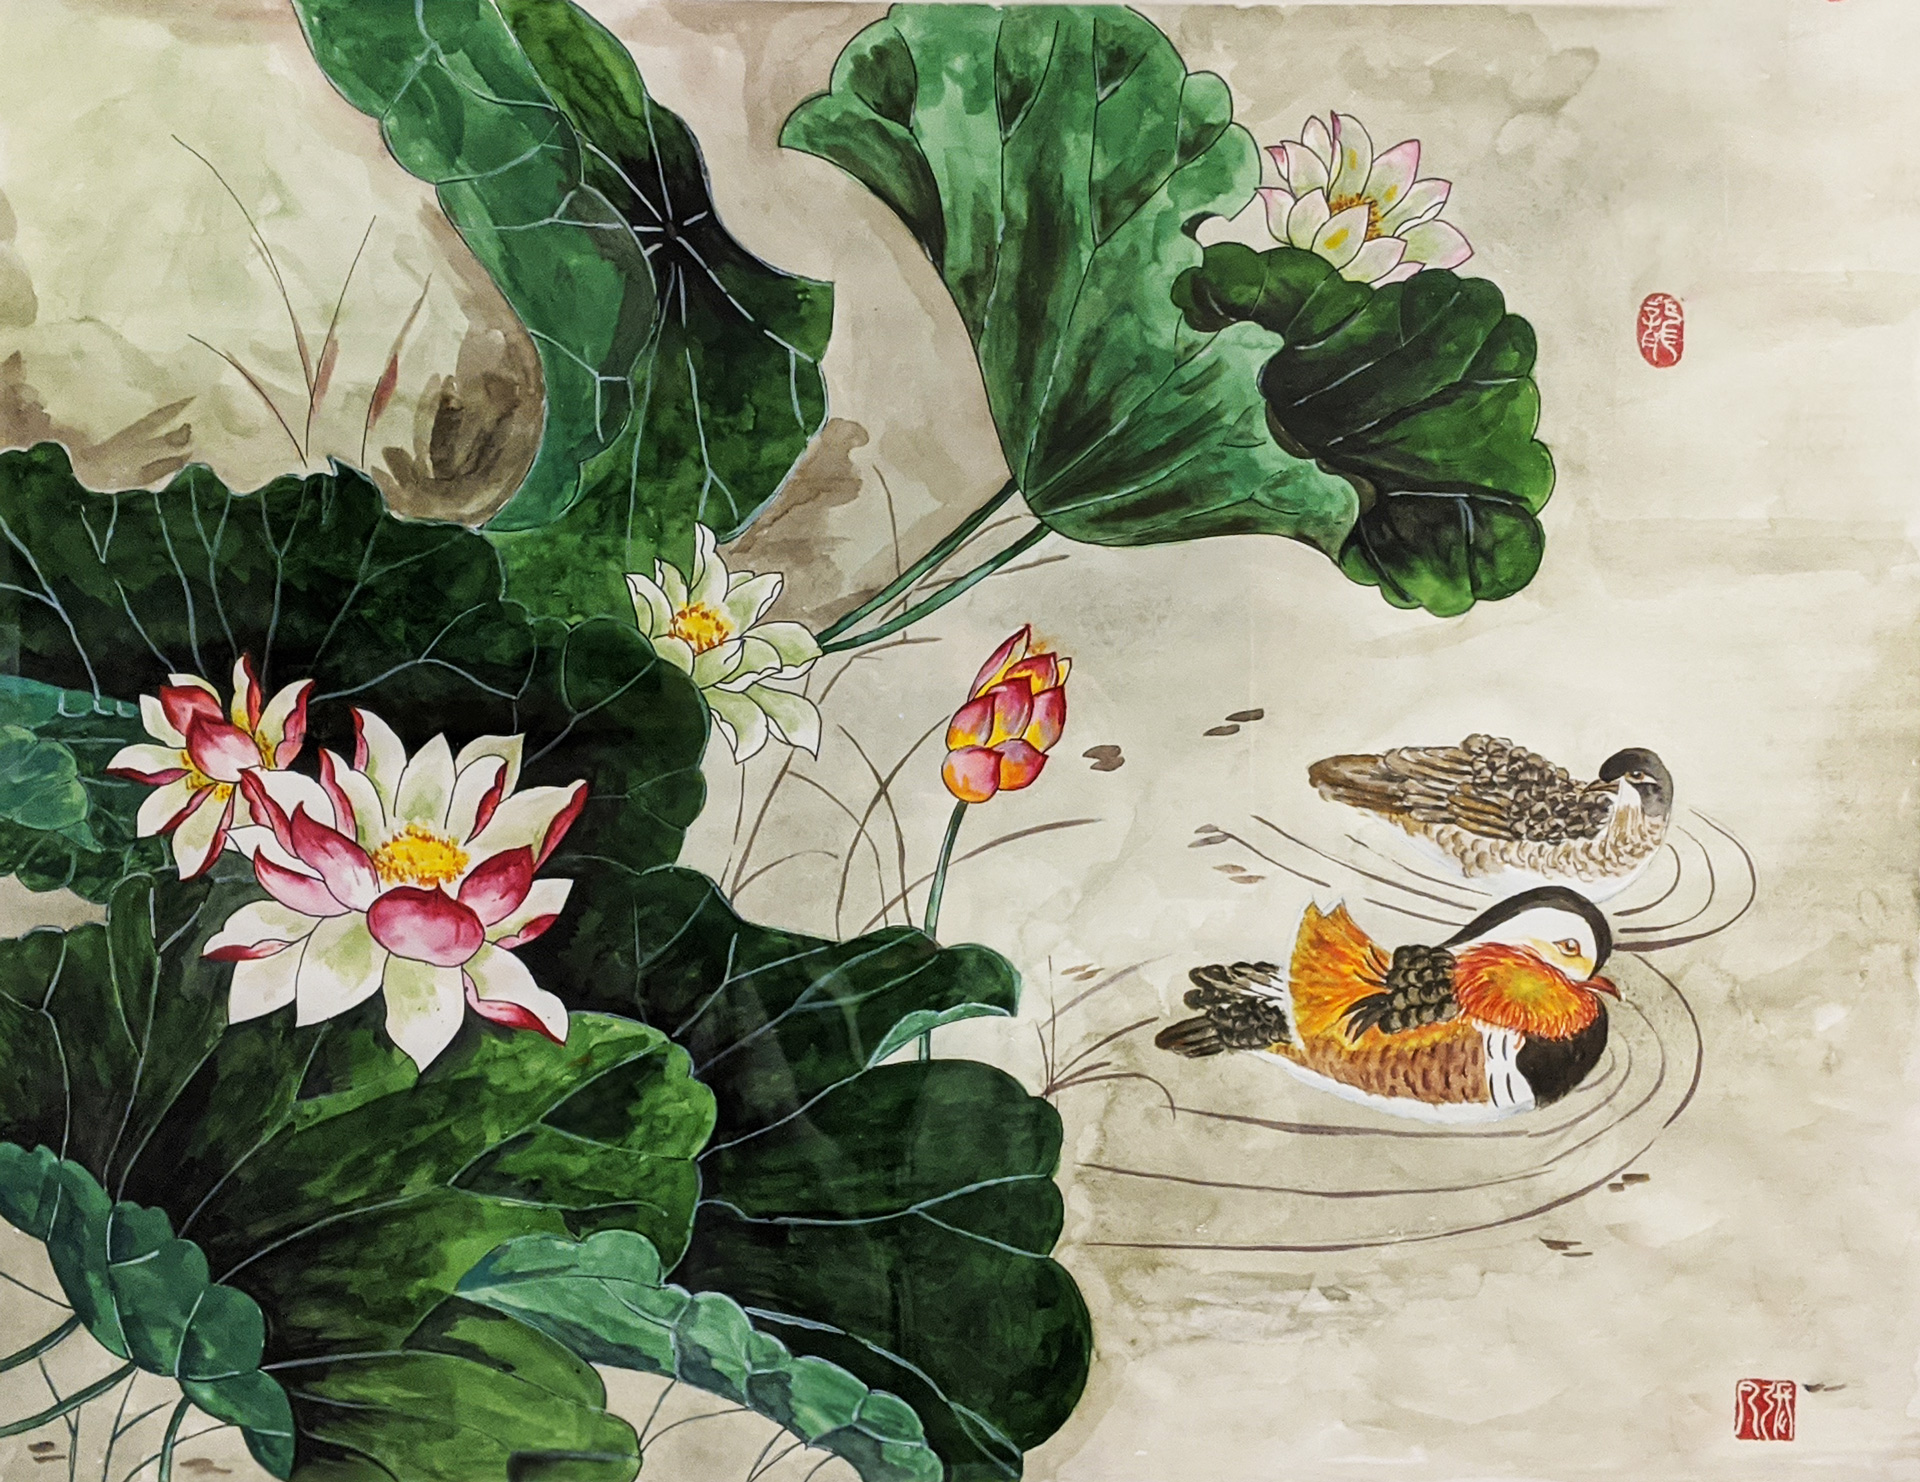 Moonlight over the Lotus Pond by Fan Stanbrough